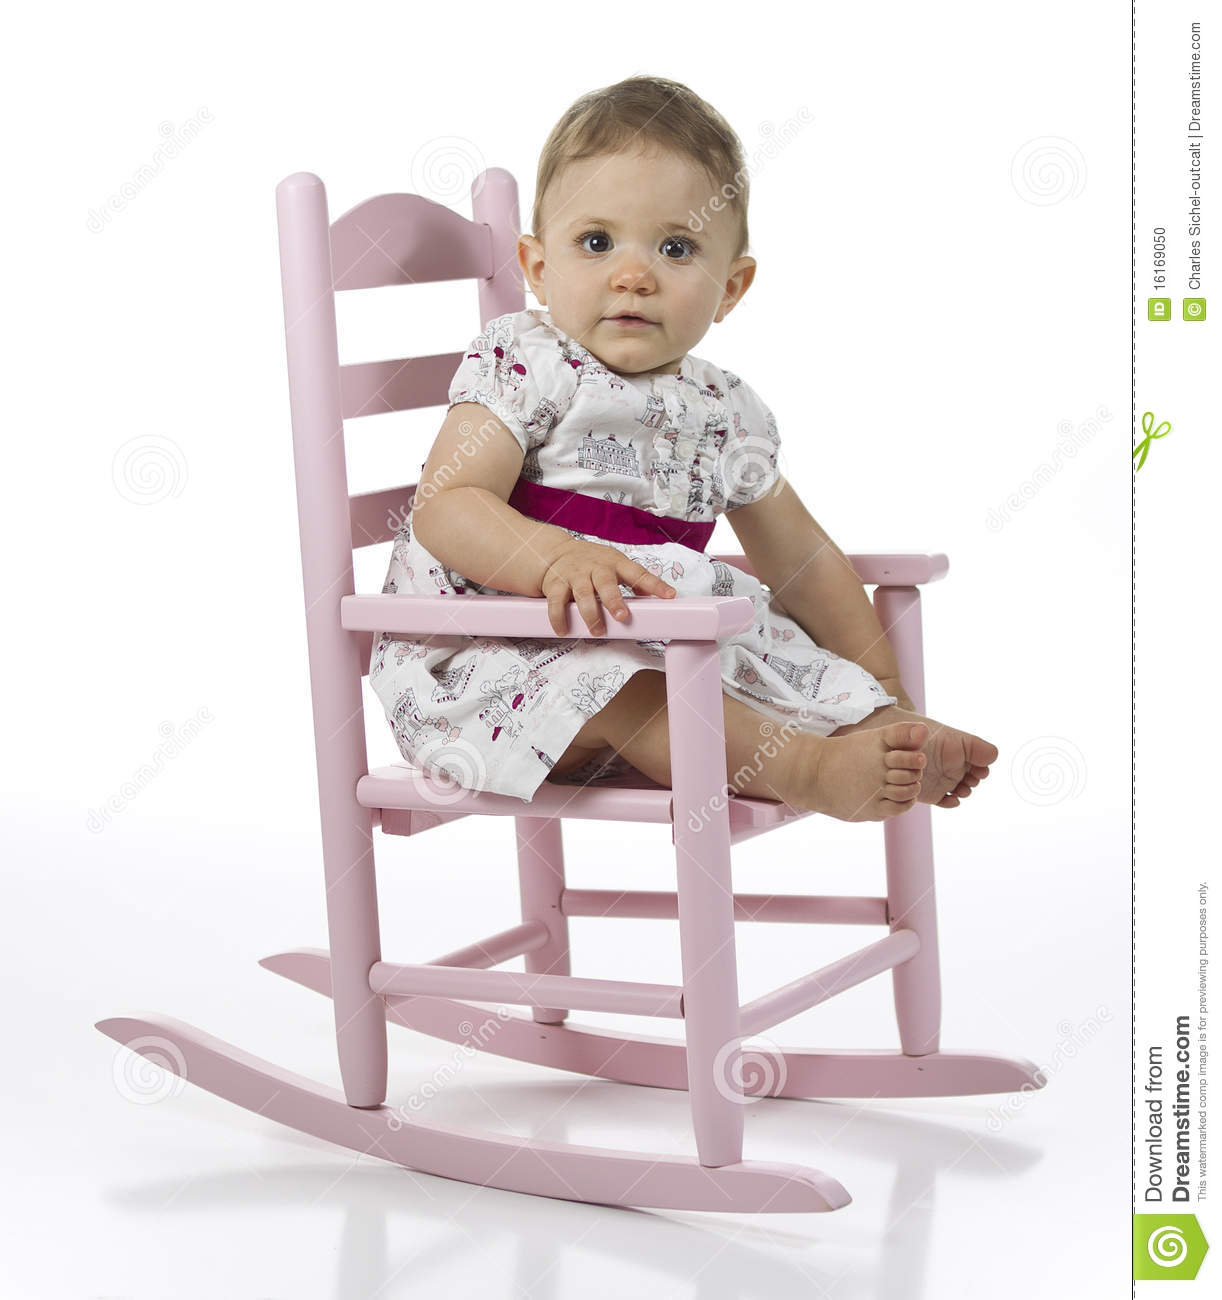 toddler white rocking chair folding lazada baby girl in stock photo image of looking